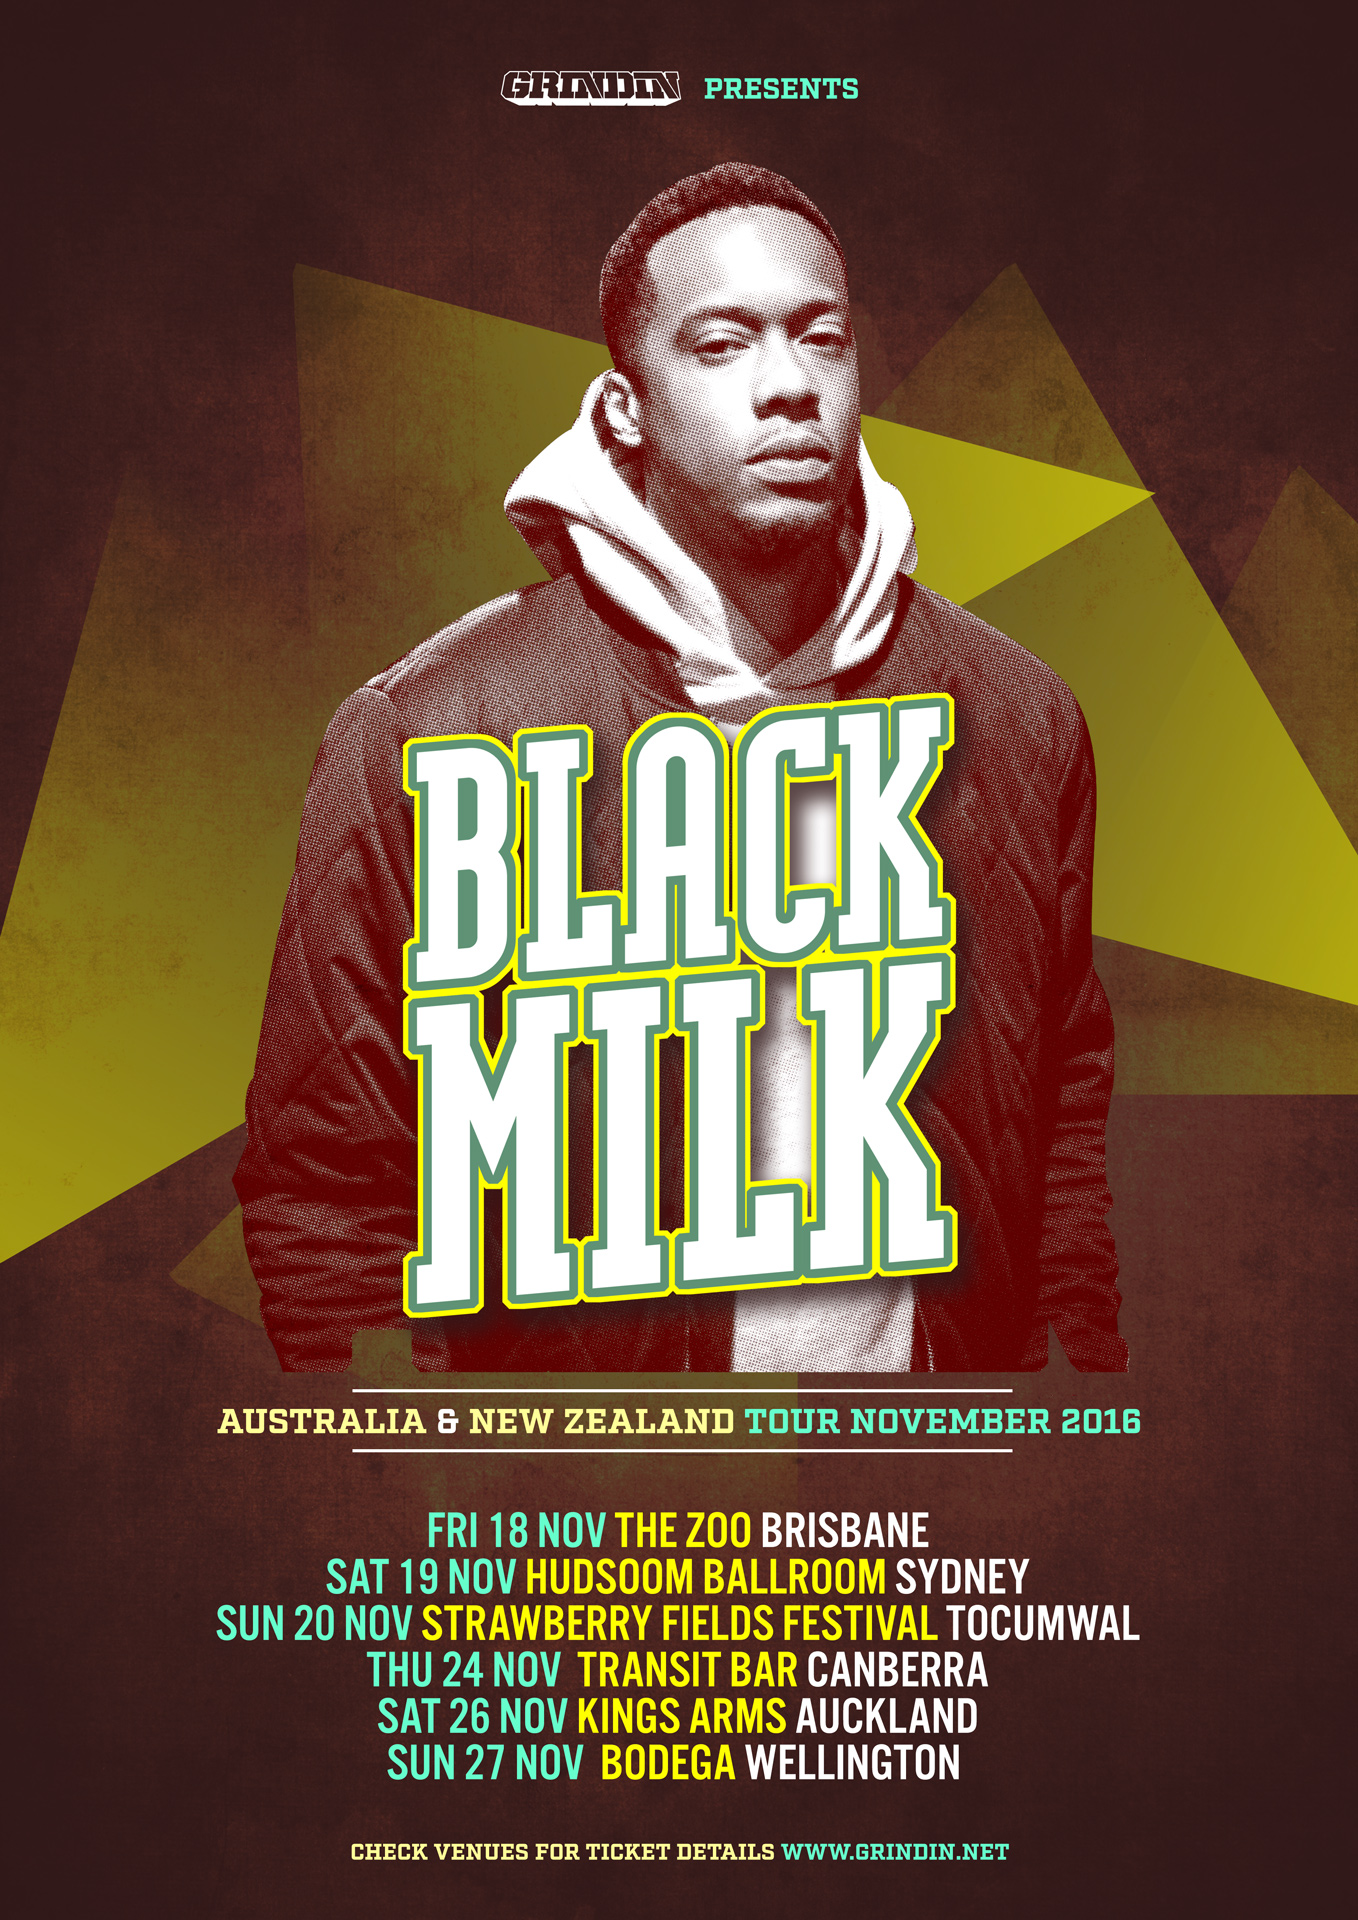 BLACK MILK AUSTRALIA / NEW ZEALAND TOUR